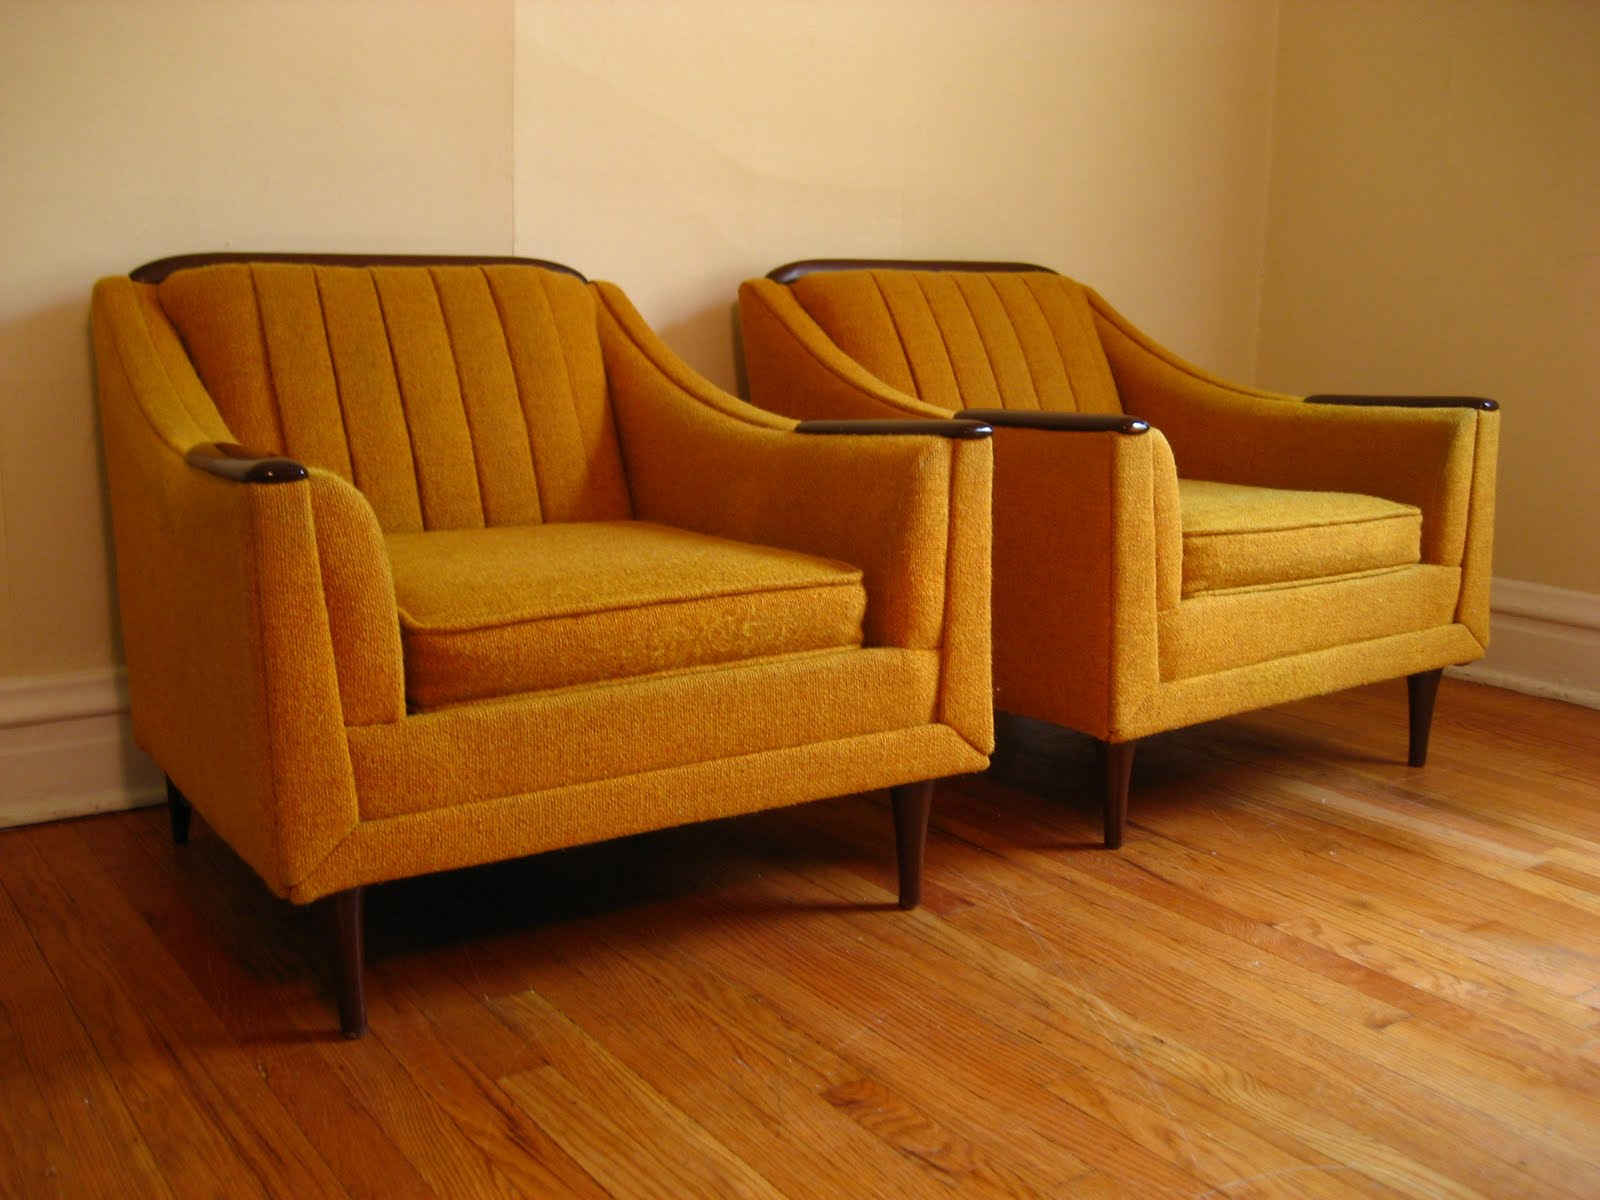 Mid Century Lounge Chair Flatout Design Mid Century Modern Lounge Chairs